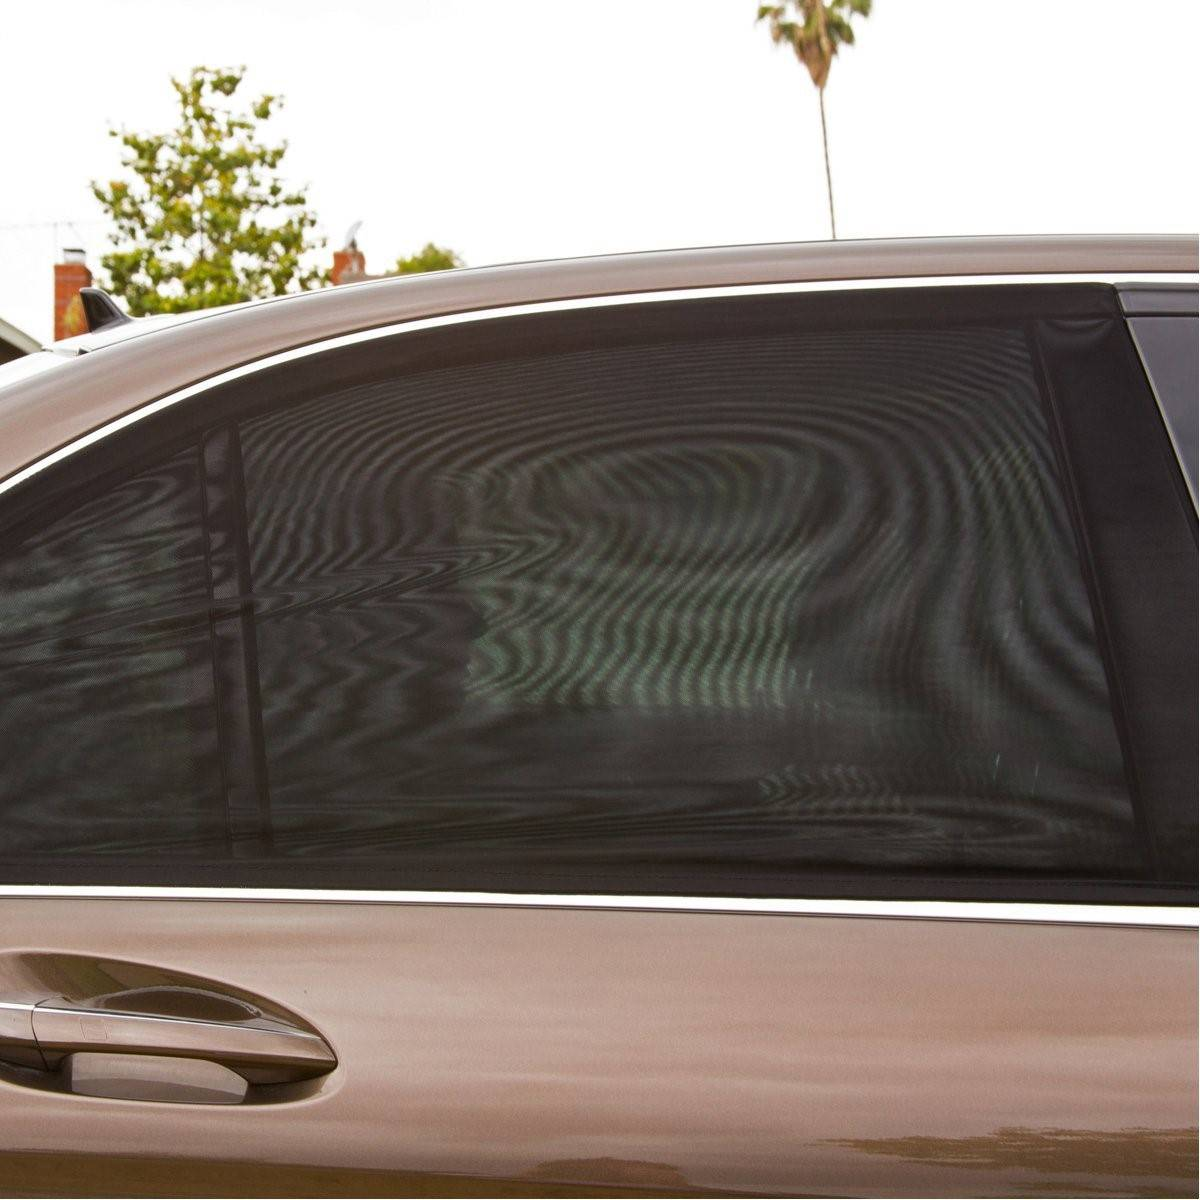 Best Car Sun Shade January 2019 Buyer S Guide And Reviews